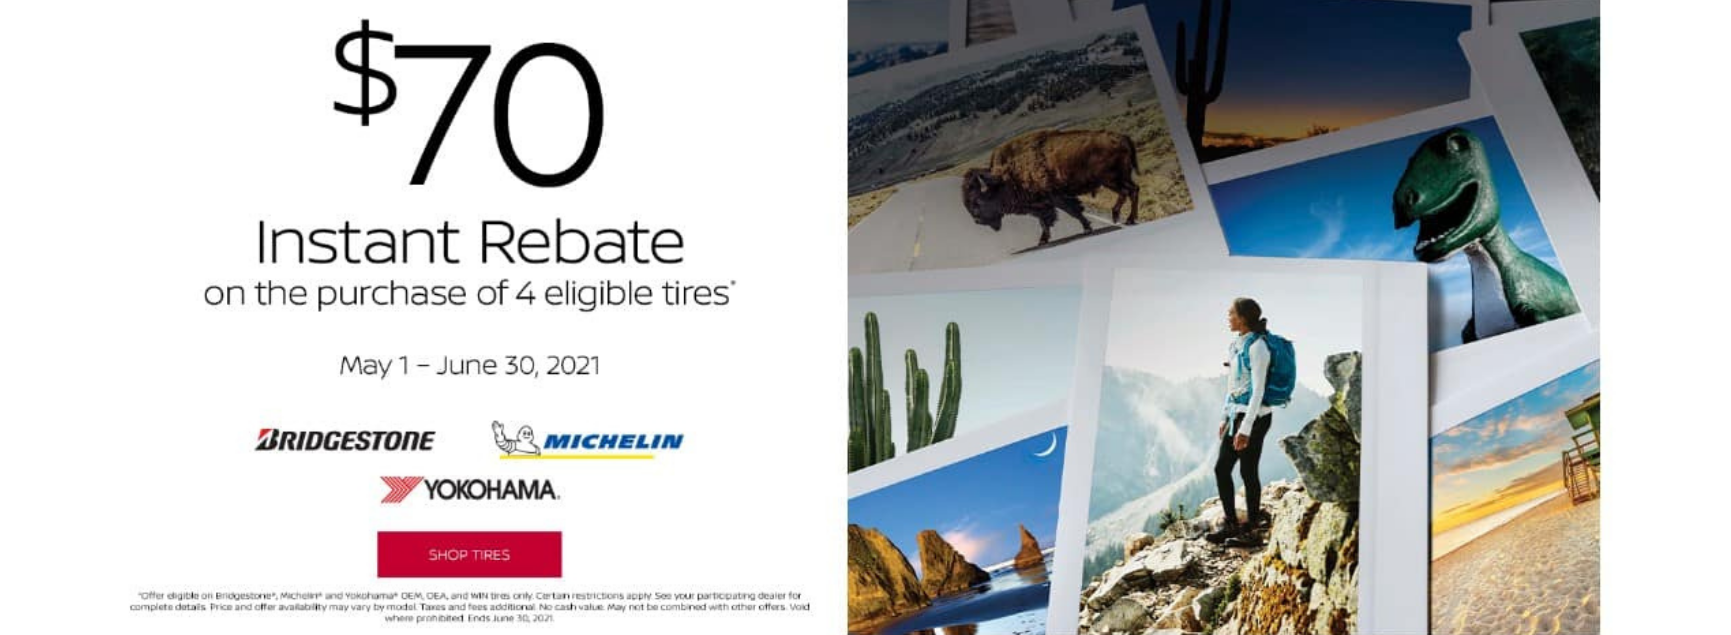 Nissan Tire AD Resized